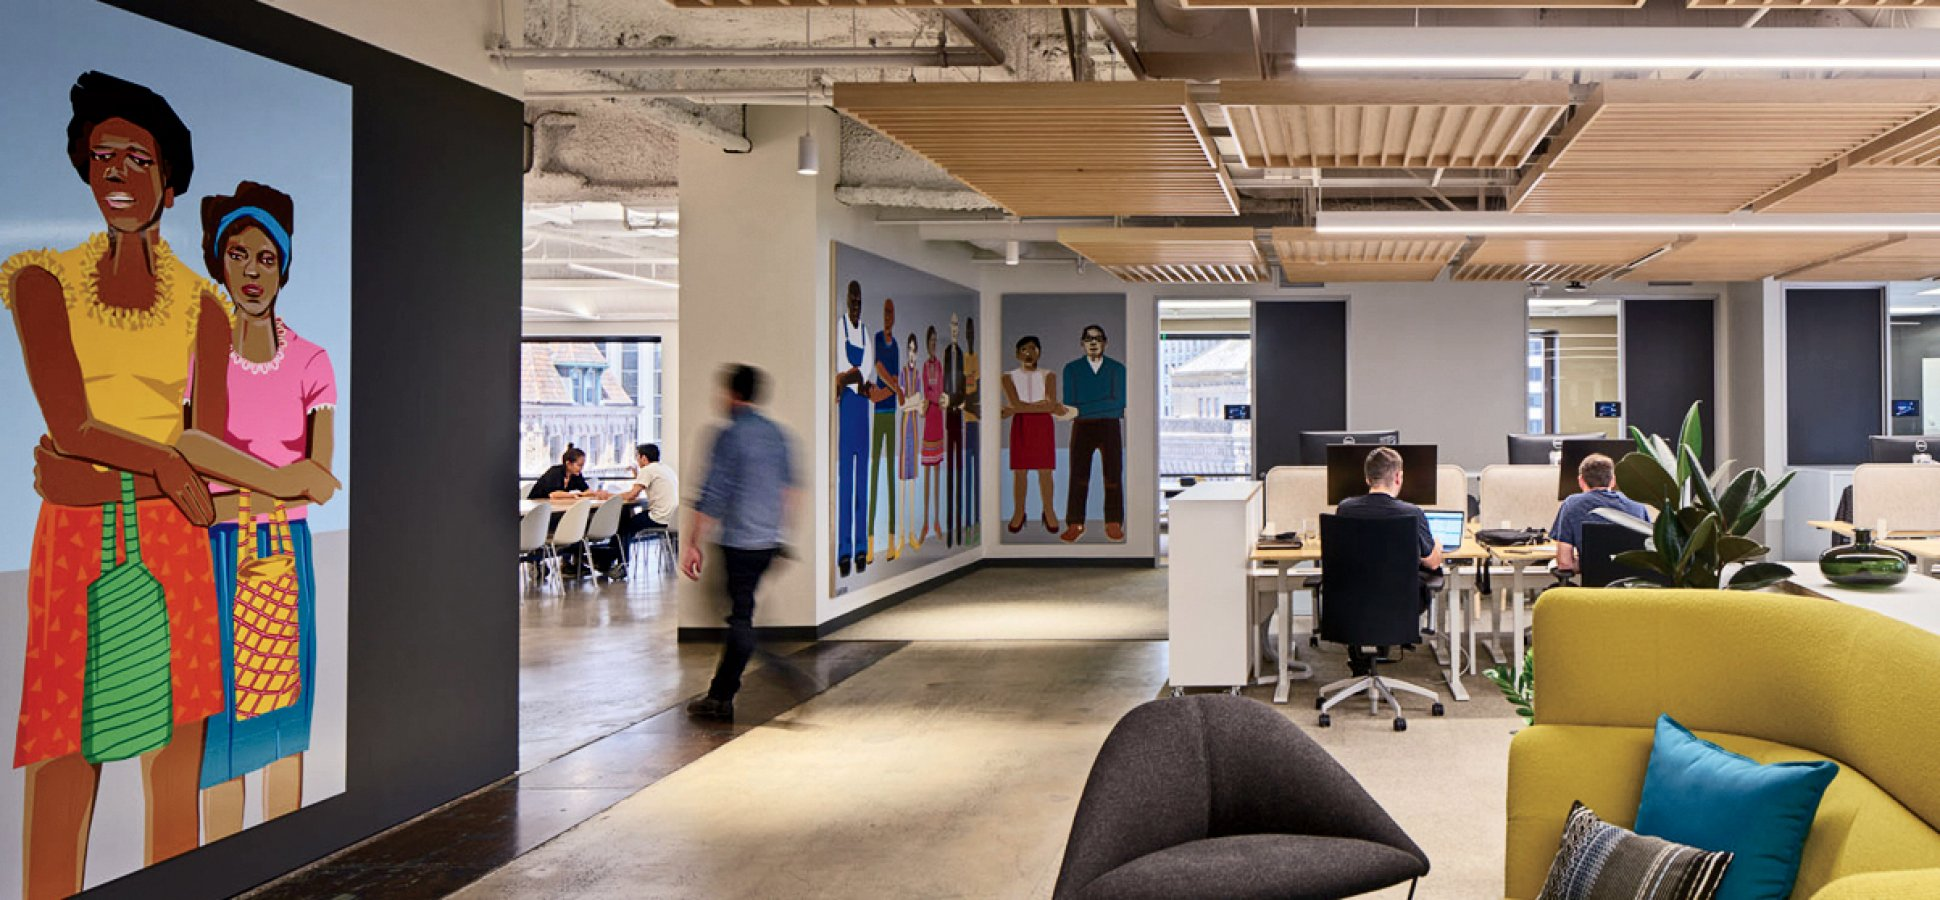 How This Startup, Along With Dropbox and Facebook, Is